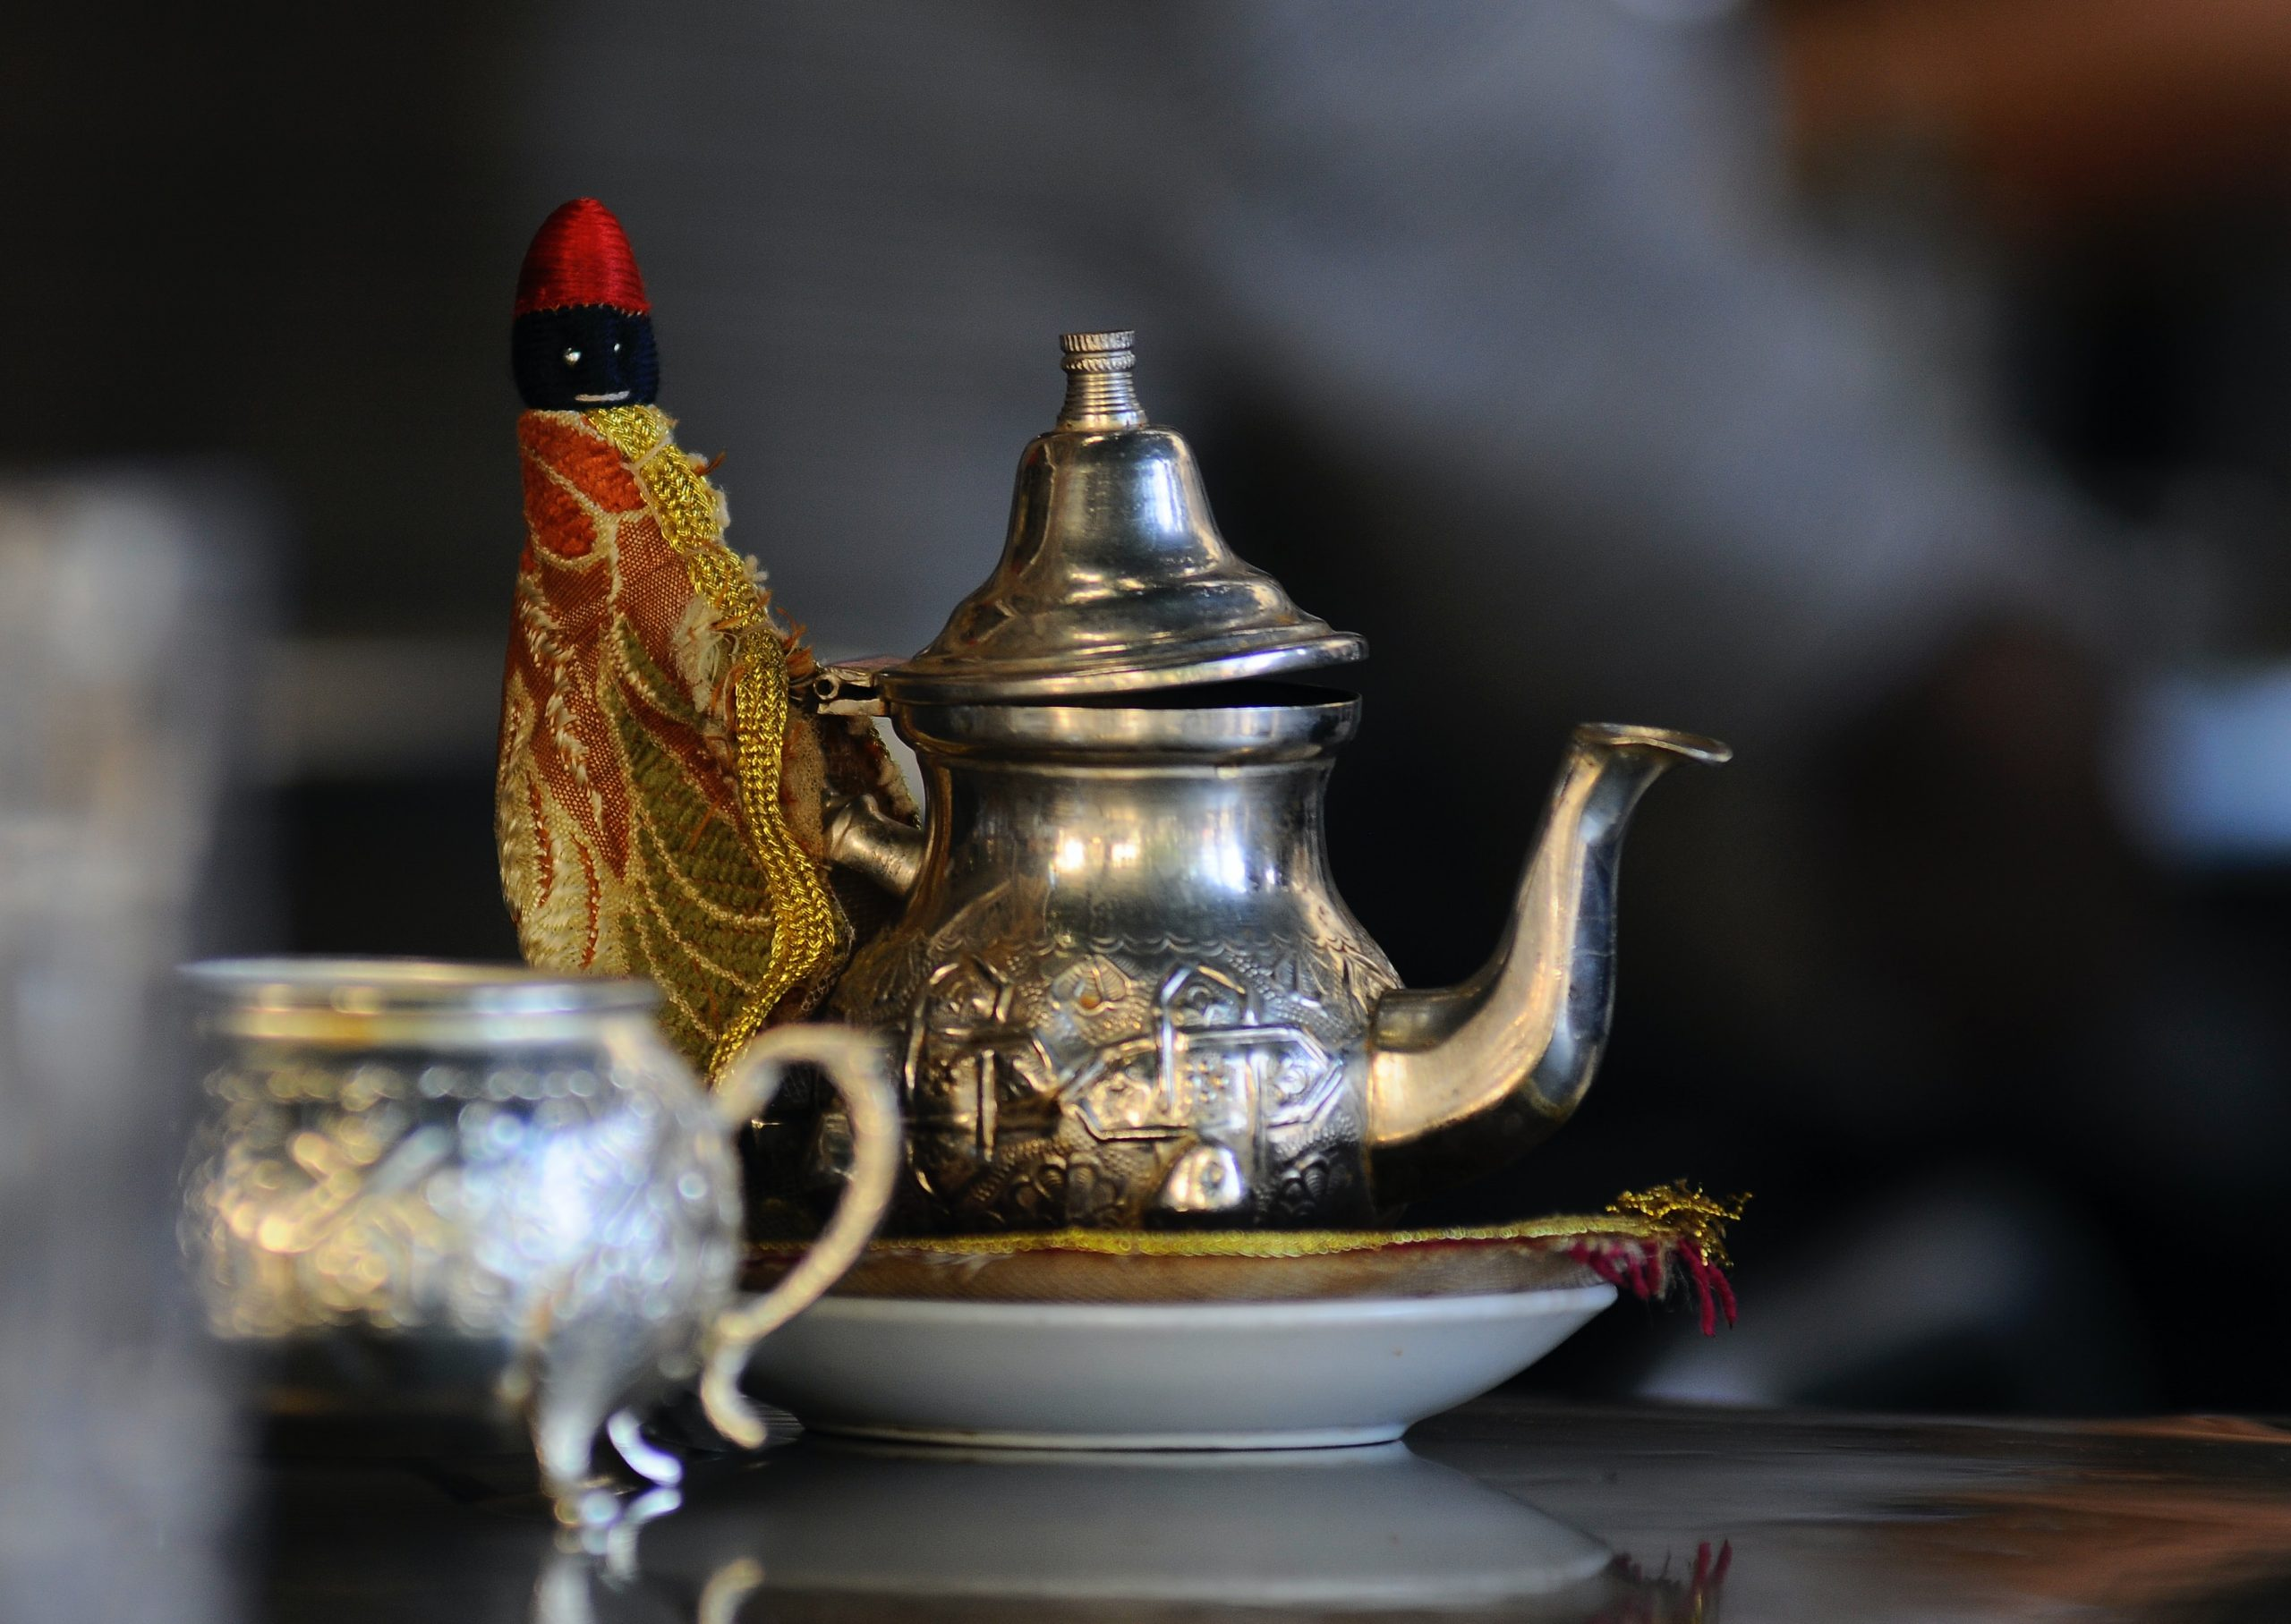 gallery image for Moroccan Folklore